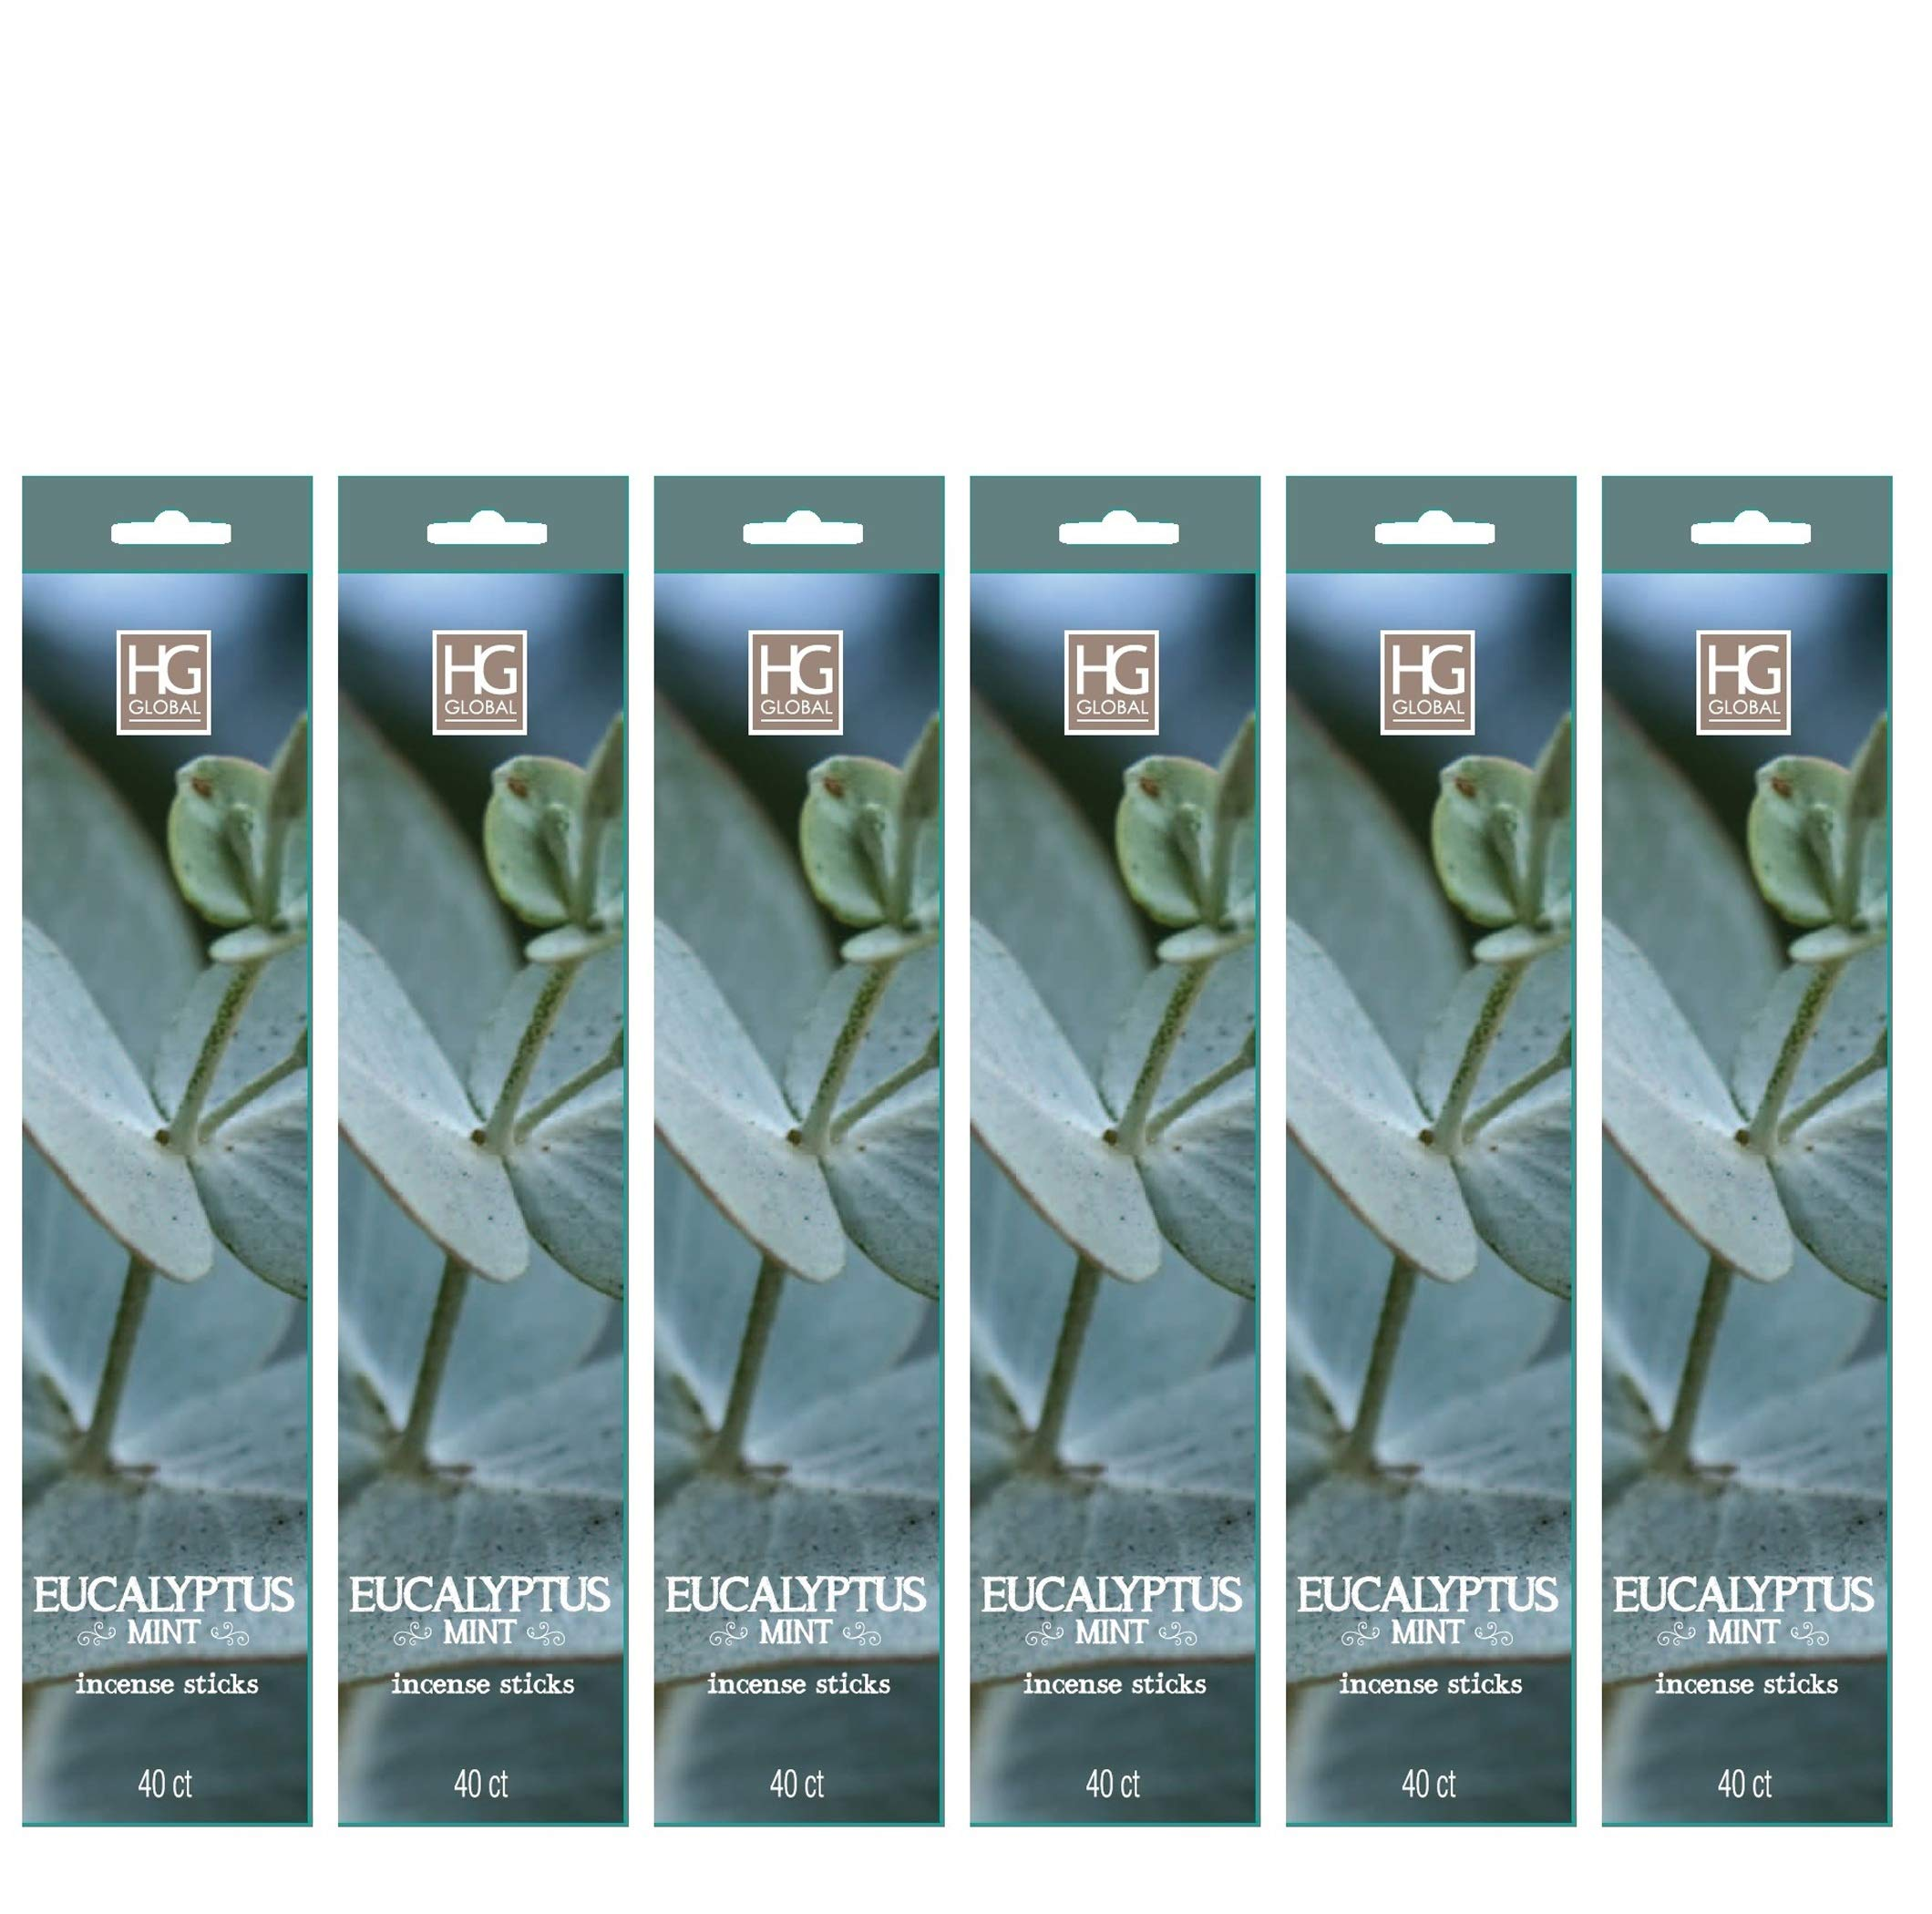 Hosley's 240 Incense Sticks/Approx. 240 gm. EUCALYPTUS MINT. Highly Fragranced. Ideal for Weddings, House Warming, Home Office, Meditation, Reiki Settings. O3